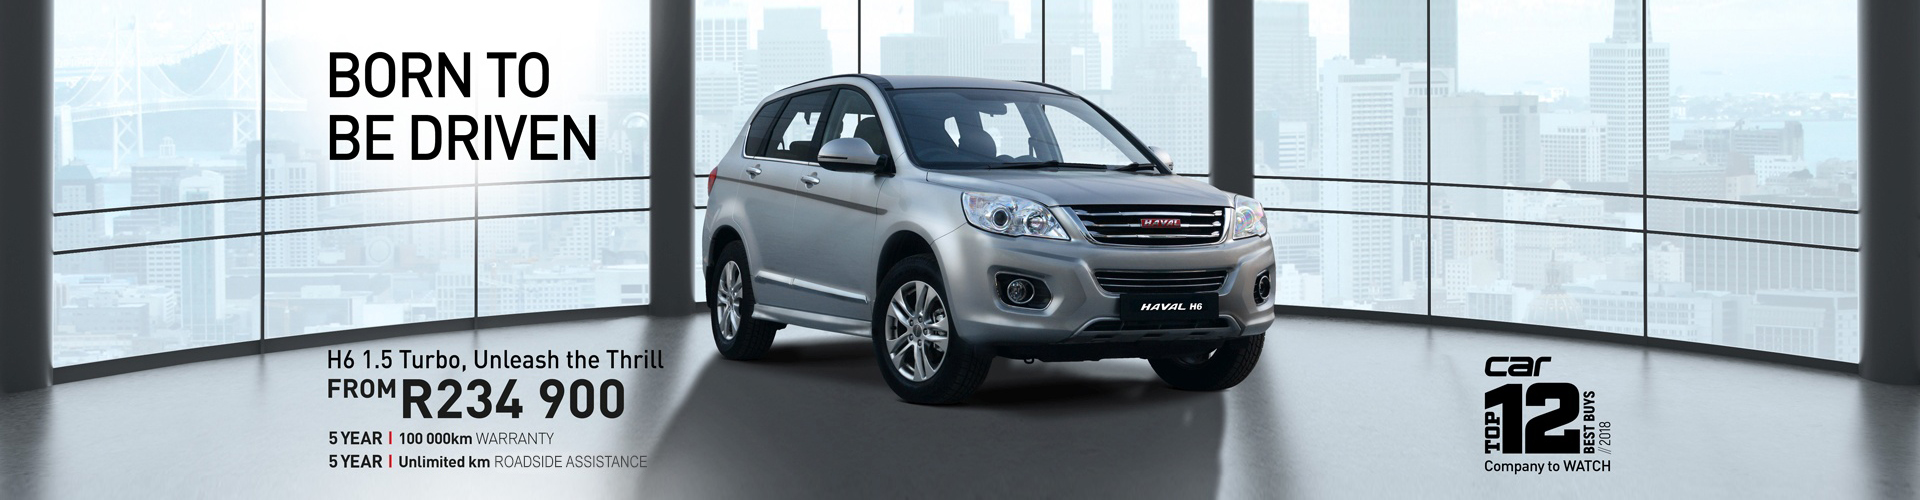 Haval Born To Be Driven